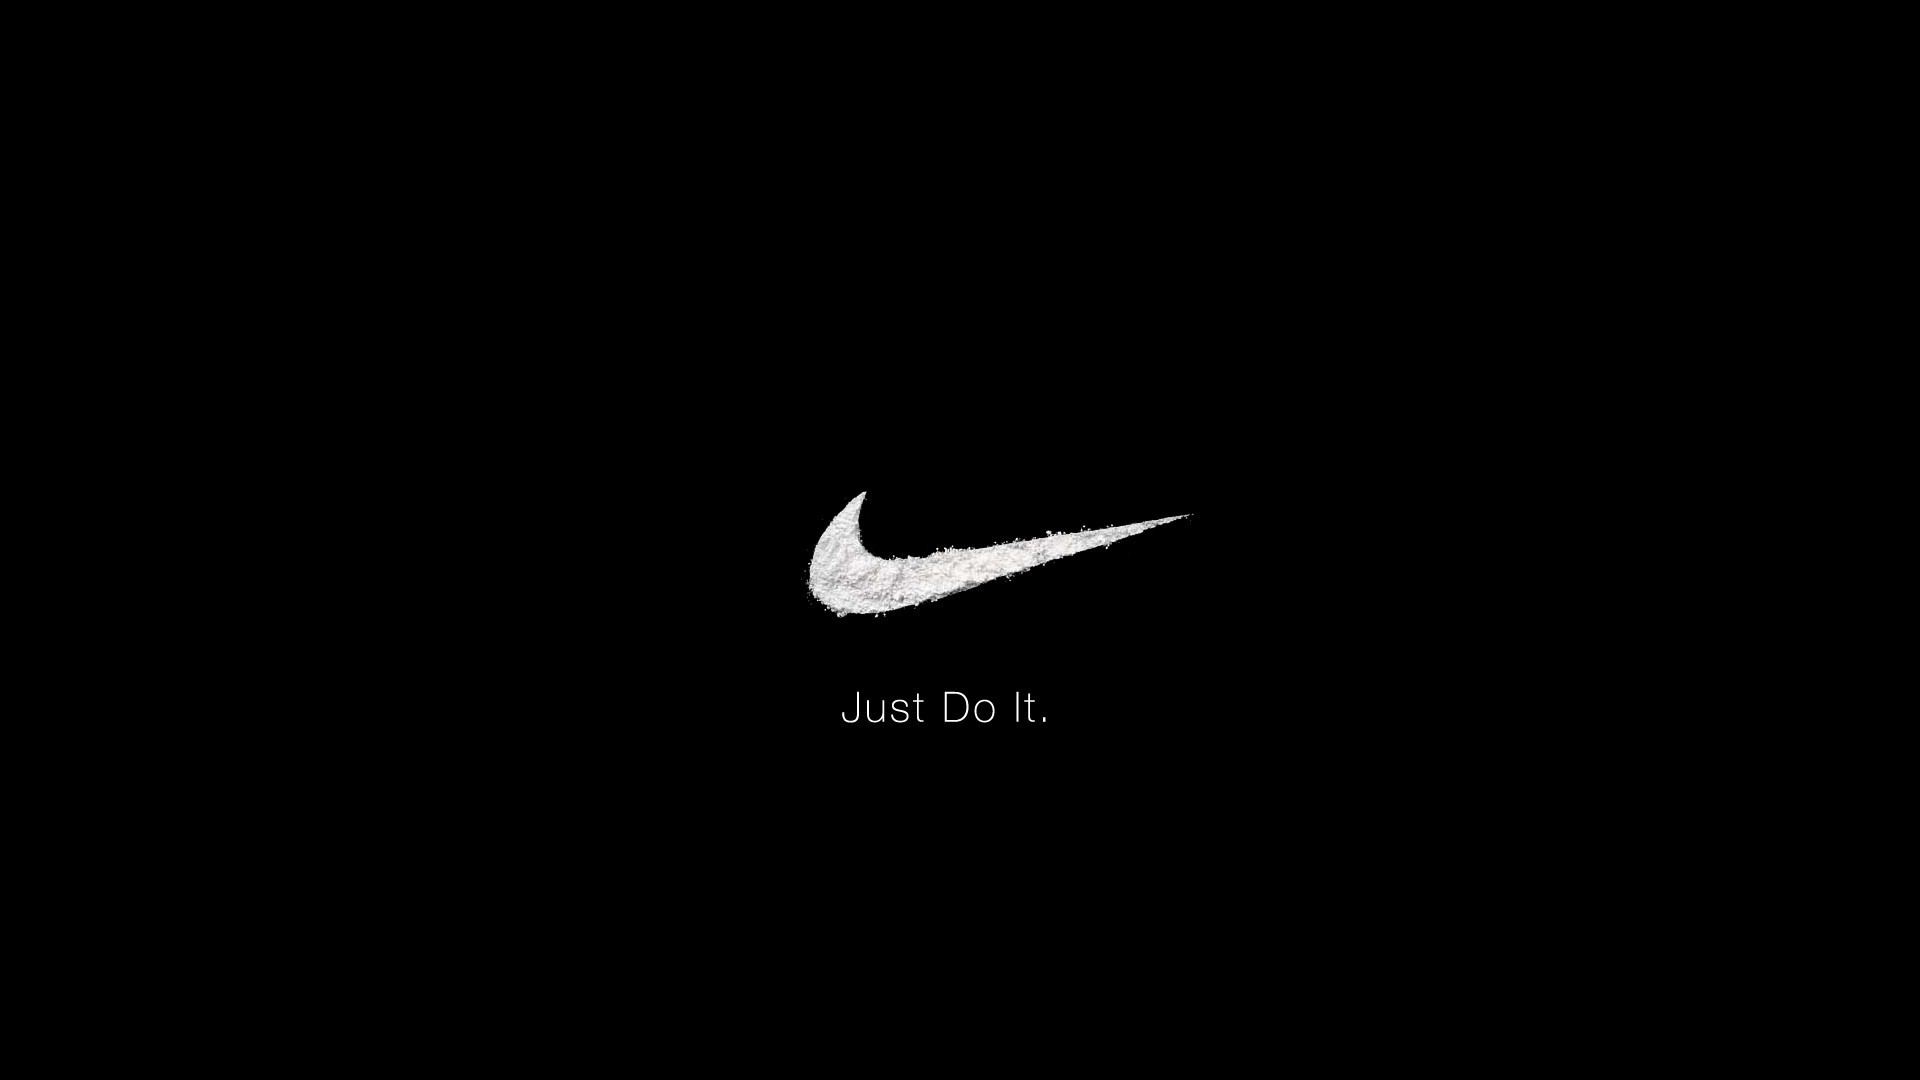 Free Download Black Nike Wallpaper Hd And Background For Ipad Cute